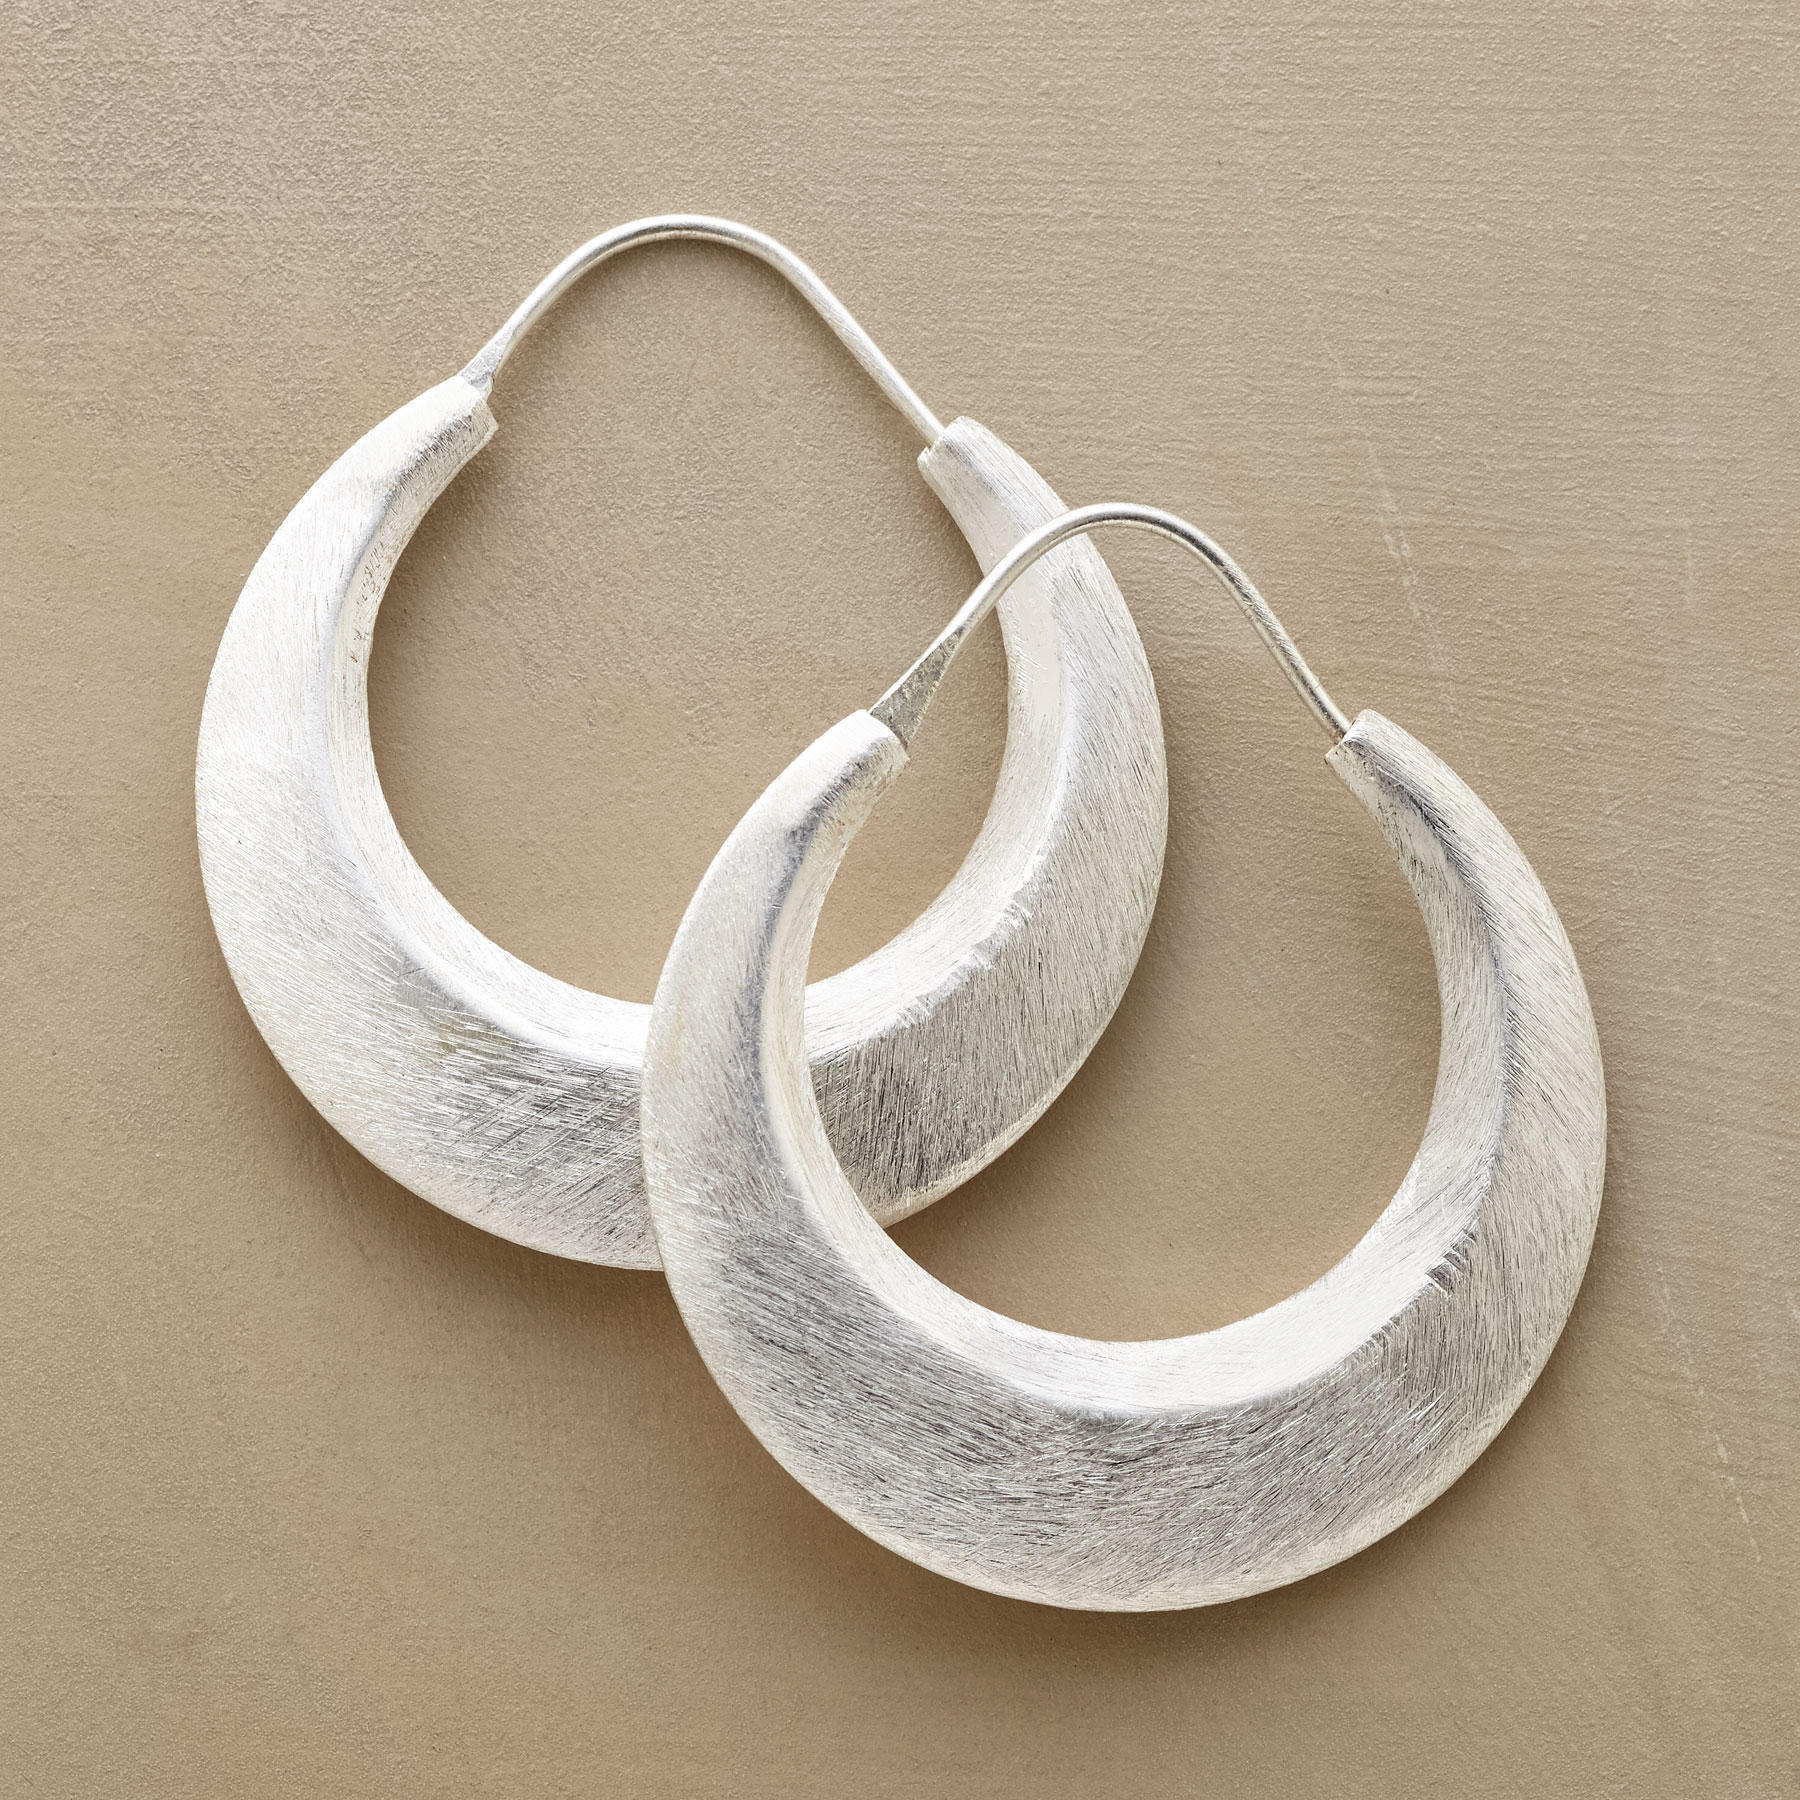 Nile Moon Hoop Earrings